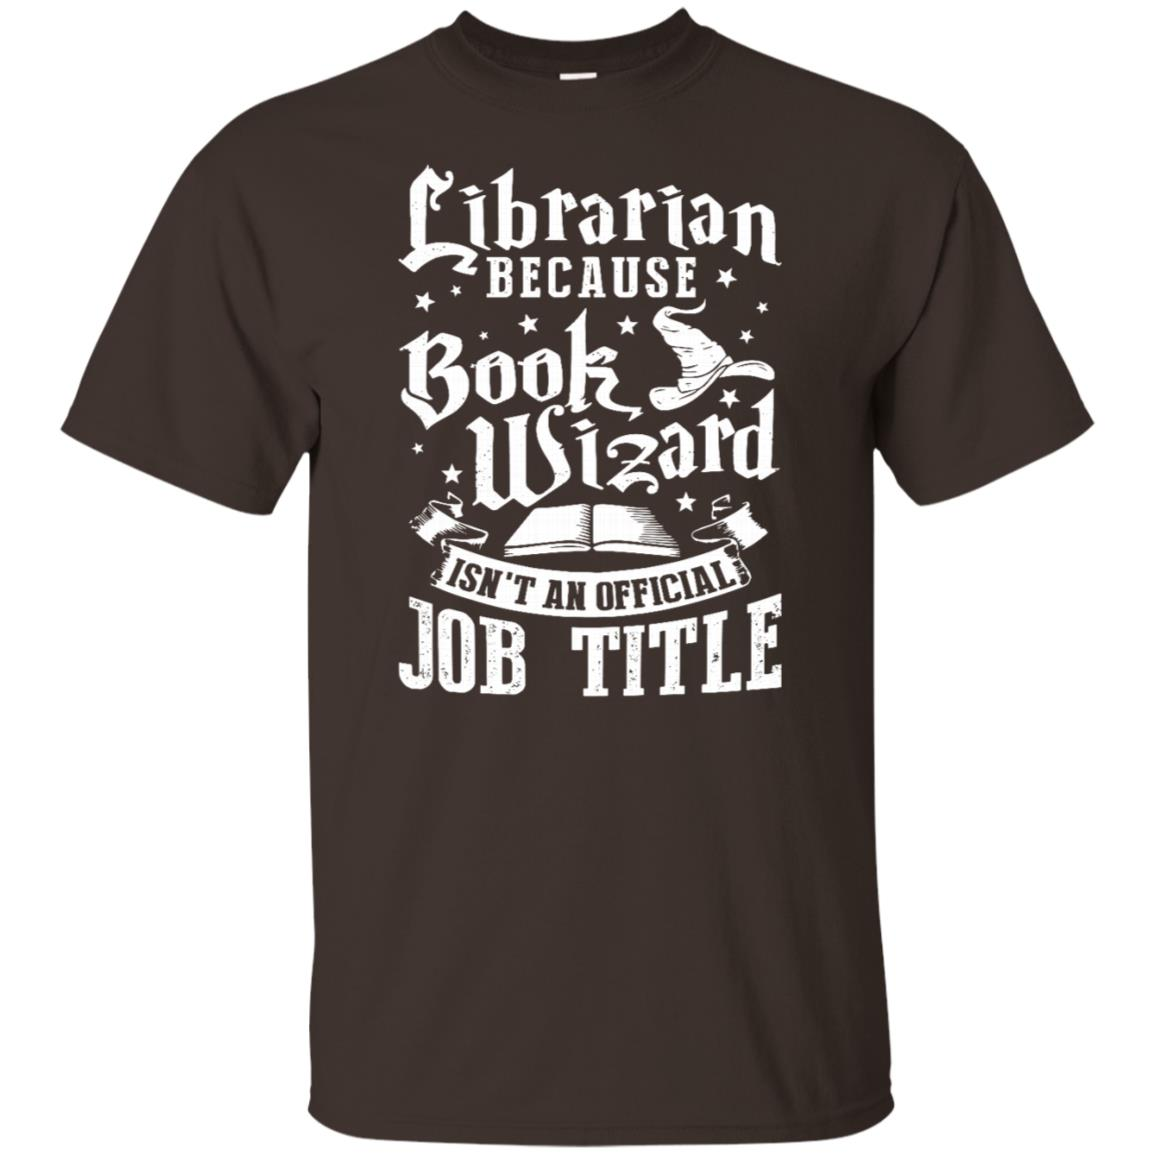 Librarian Because Book Wizard Official Job Tee Unisex Short Sleeve